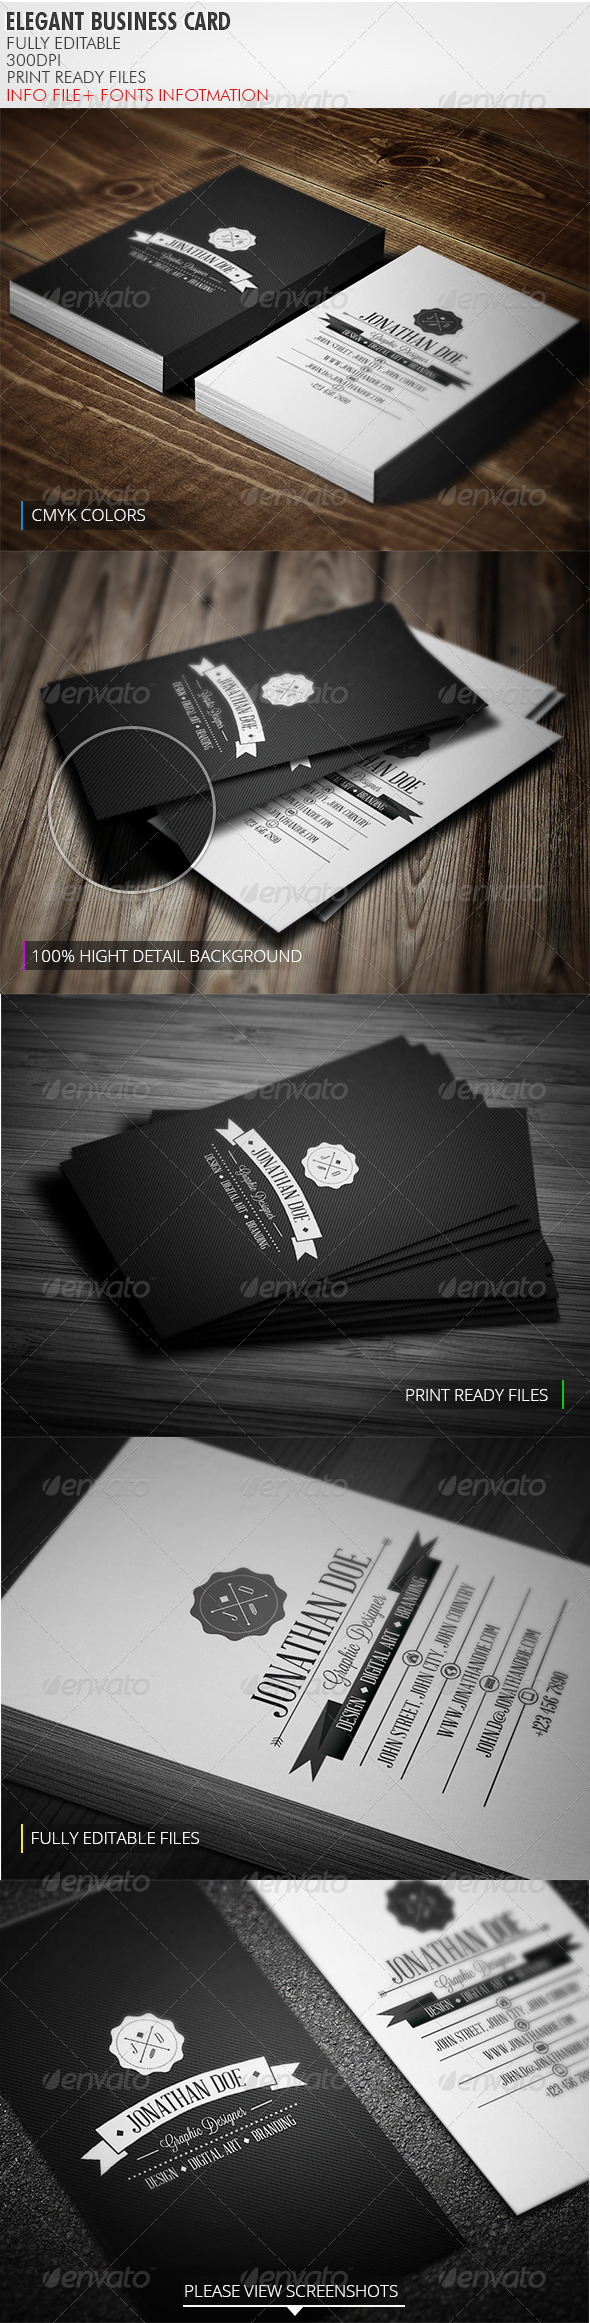 GraphicRiver Retro Business Card 3802688